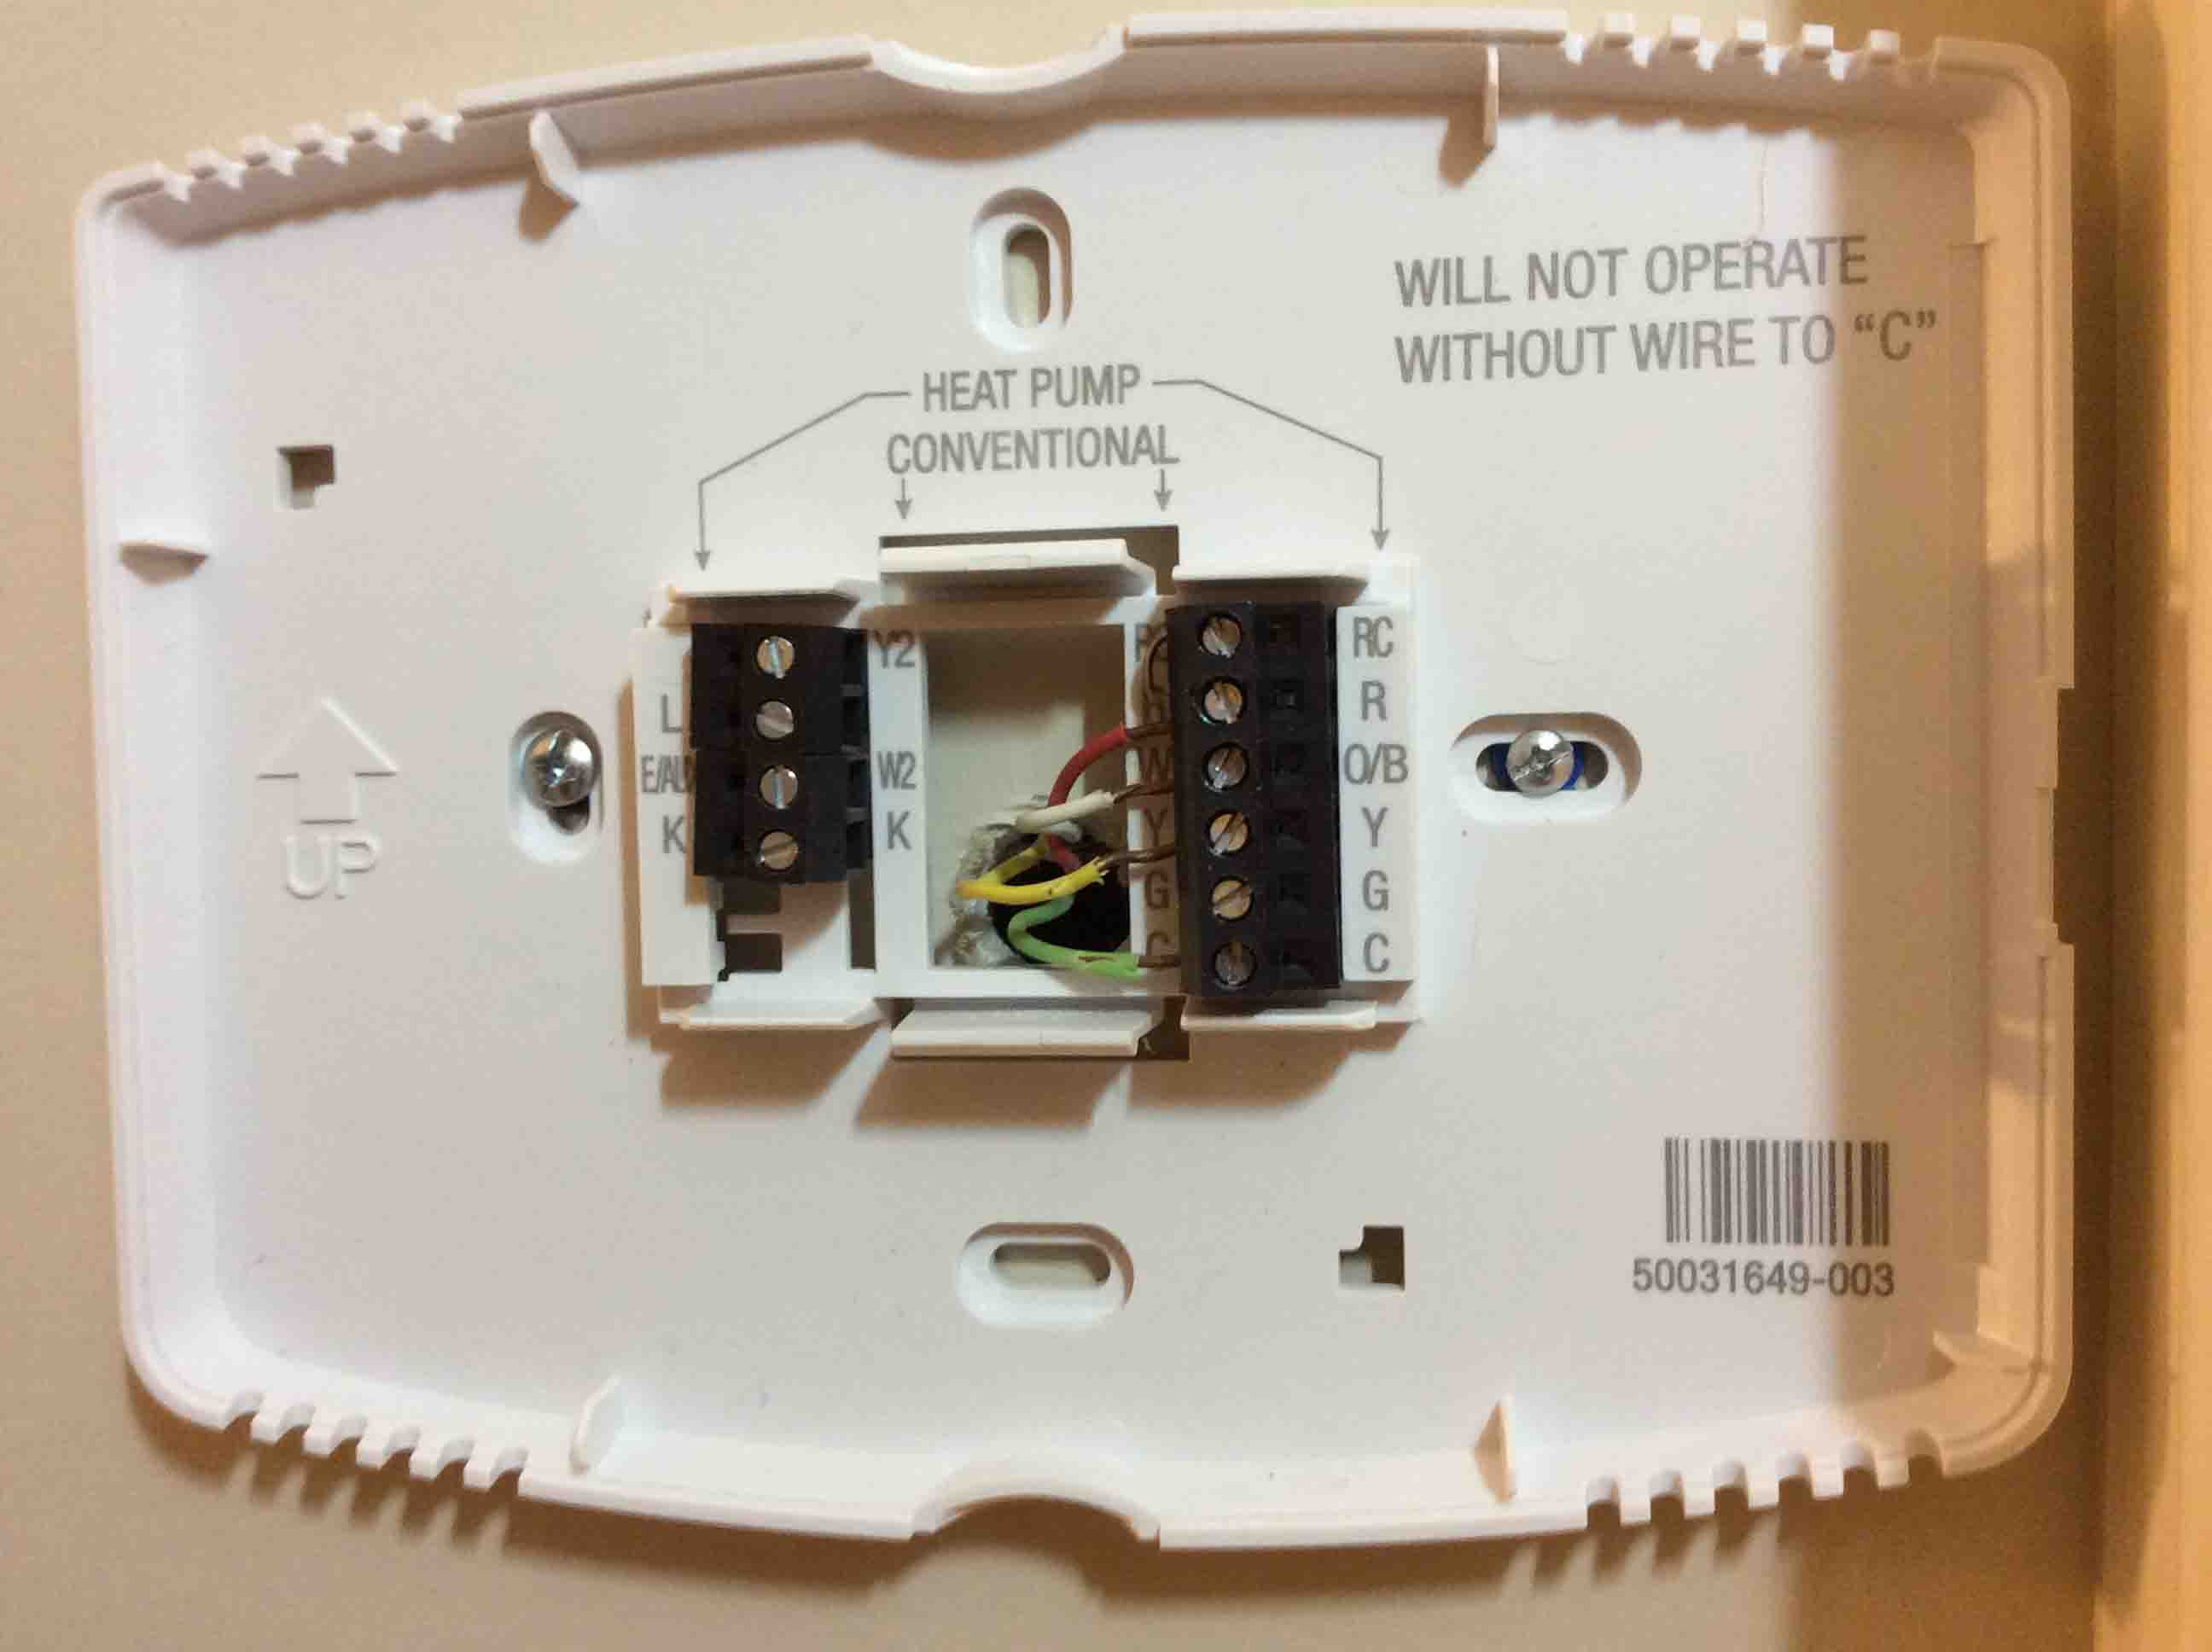 honeywell smart thermostat wiring instructions rth9580wf tom s tek rh tomstek us 2 wire honeywell thermostat wifi wiring diagram honeywell wifi thermostat